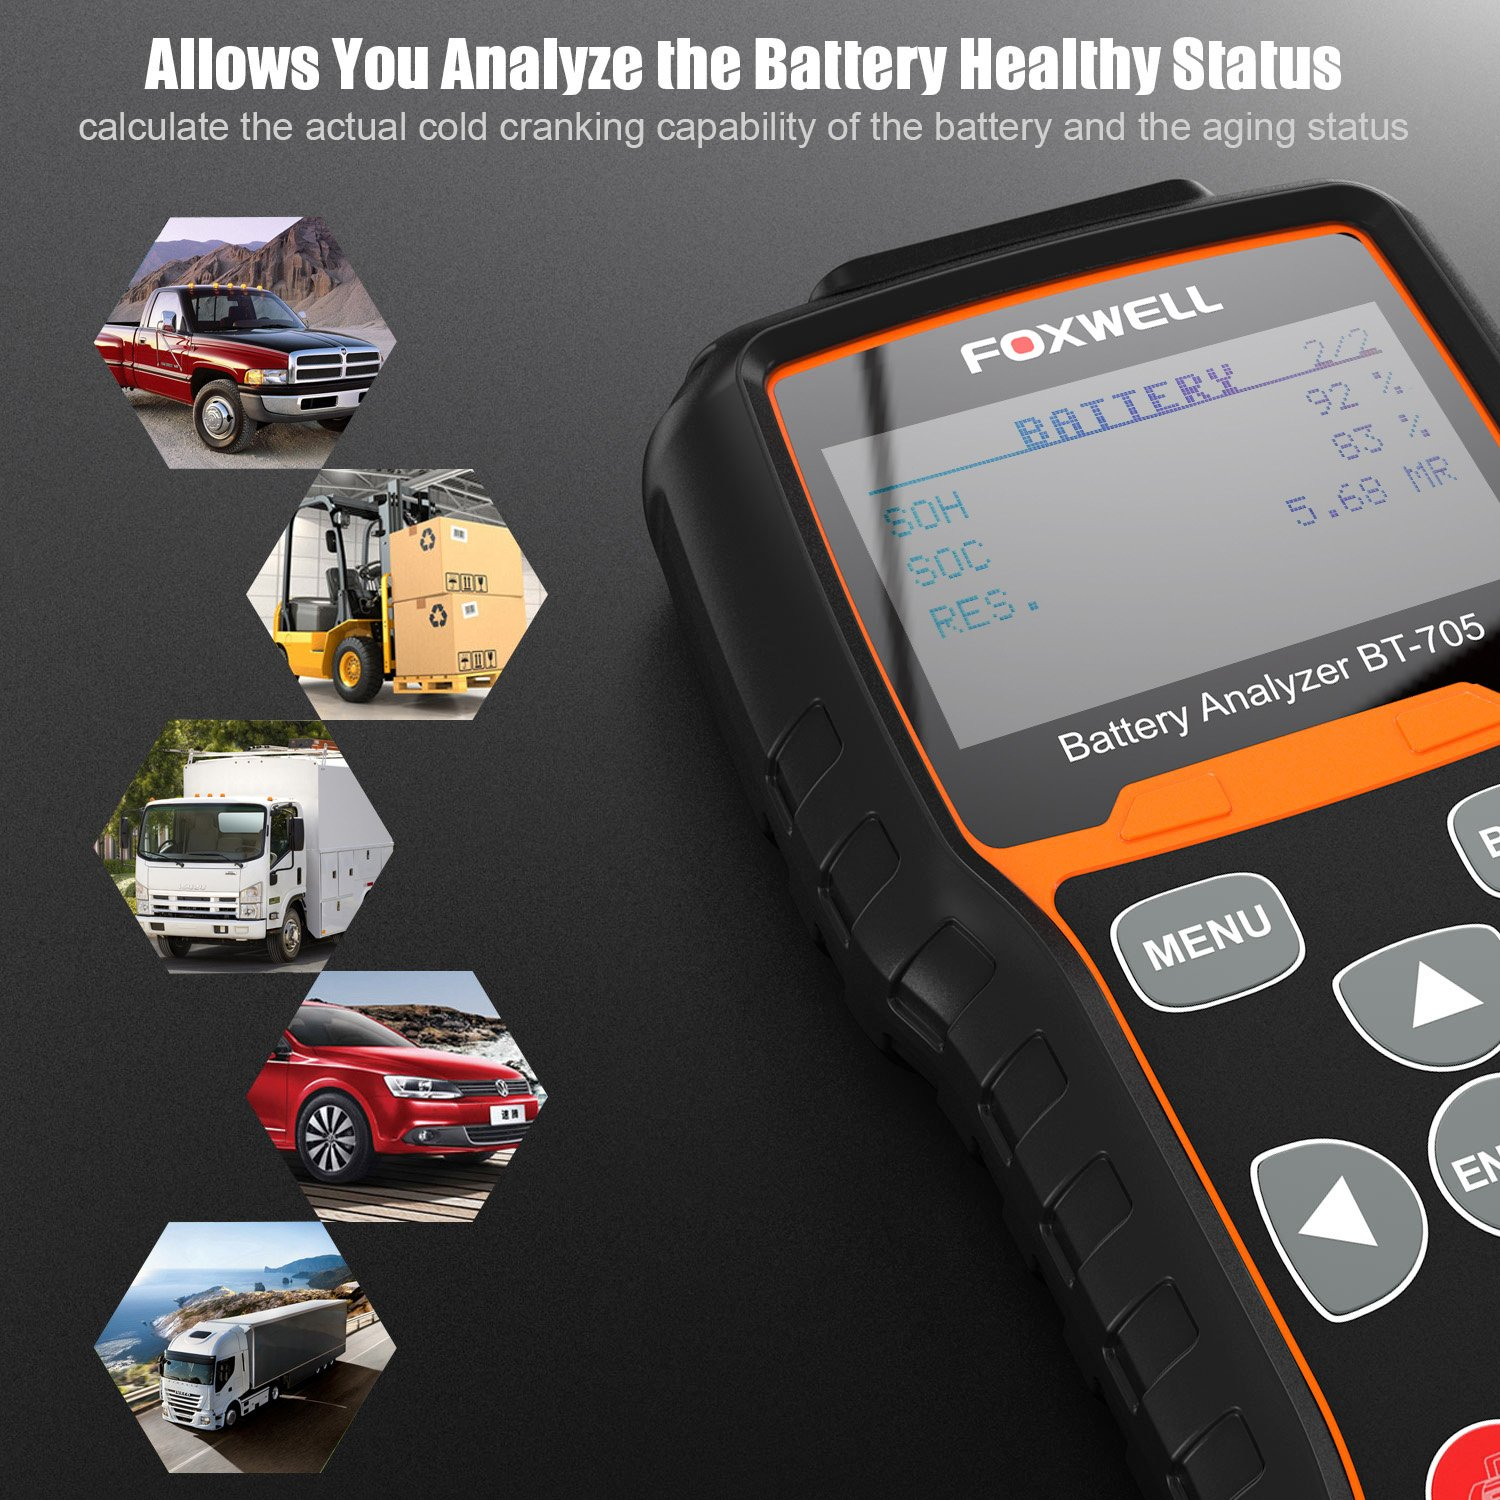 Battery Tester Foxwell Bt705 Automotive 100 2000 Cca By Lisle Continuity Computer Safe Circuit Load 12v 24v Car Cranking And Charging System Test Scan Tool Digital